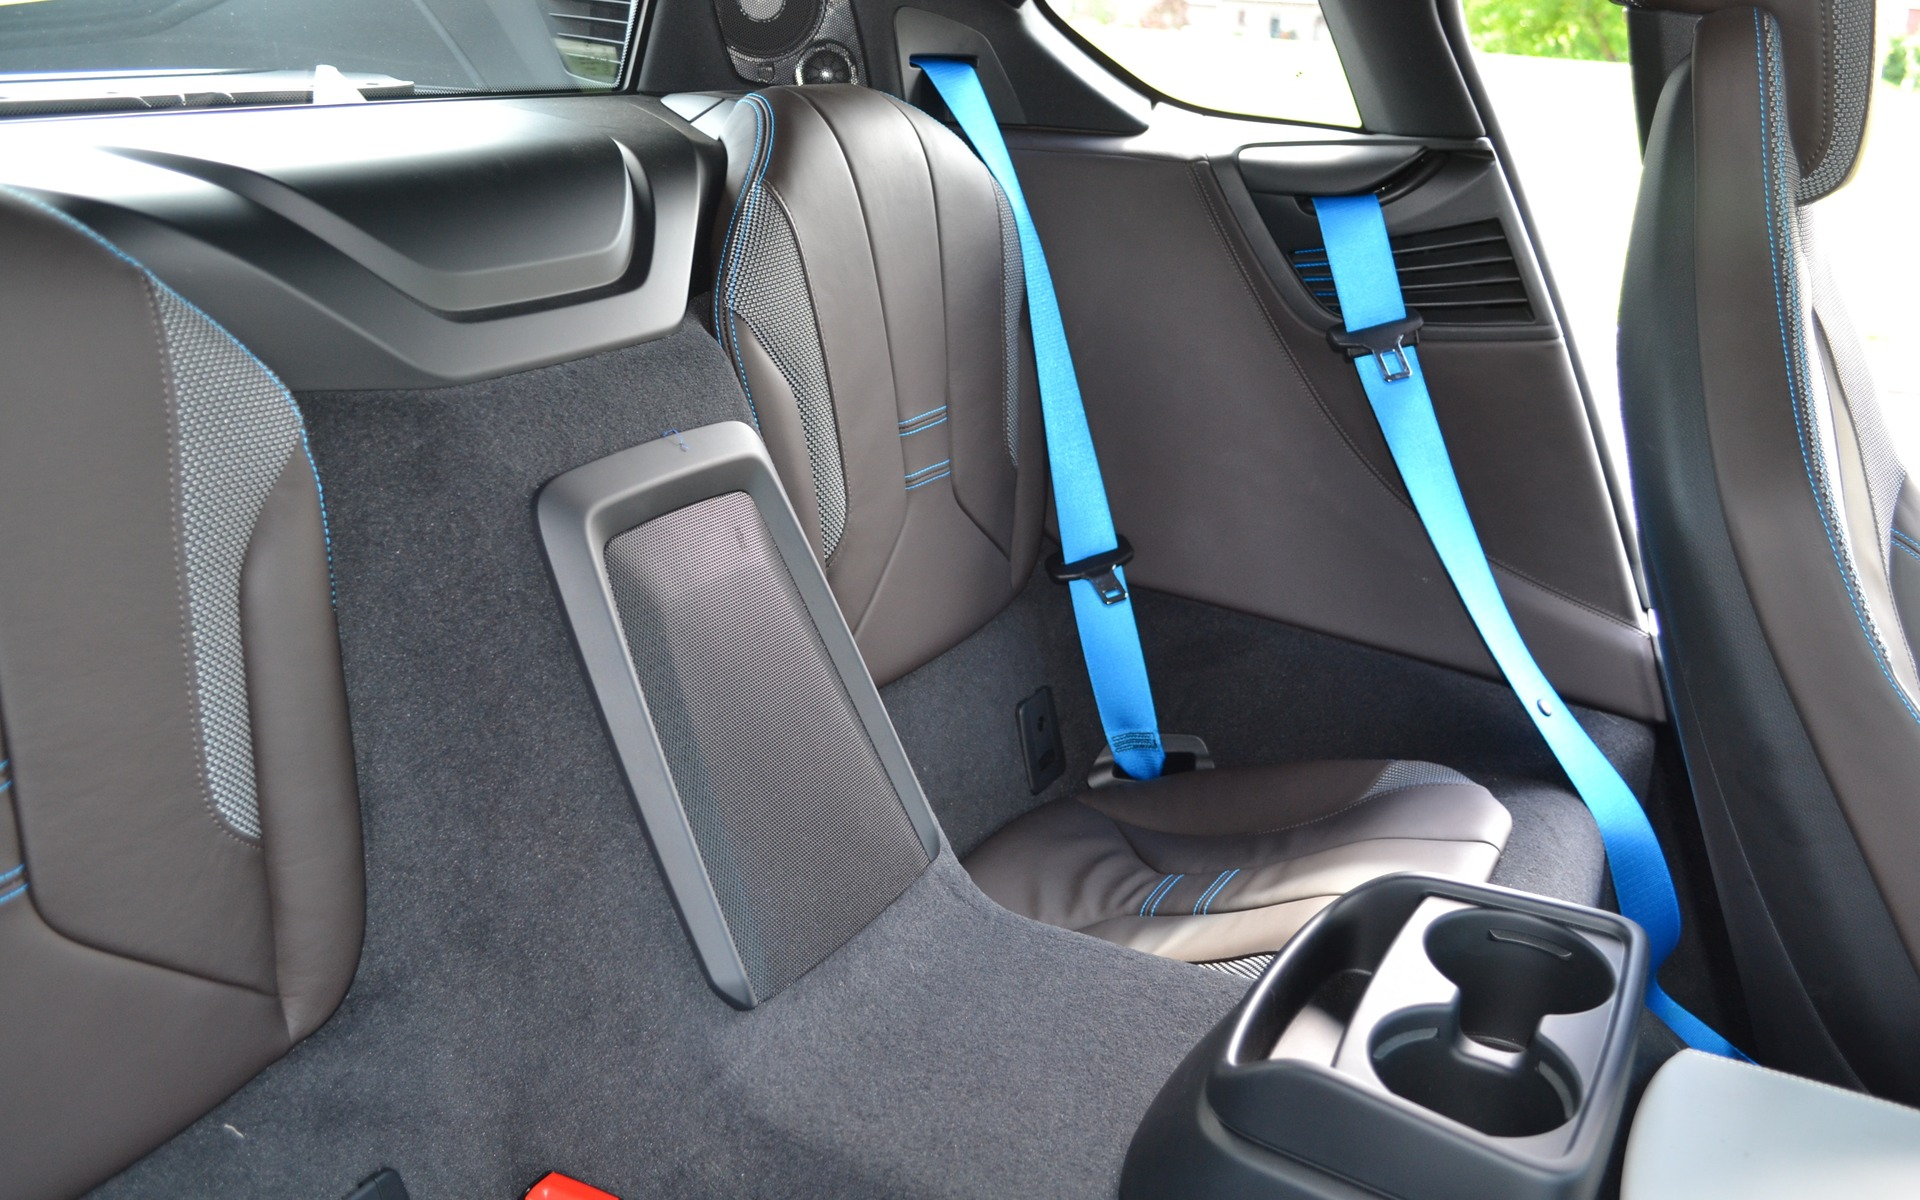 The BMW I8 Can Seat Two People In Back.